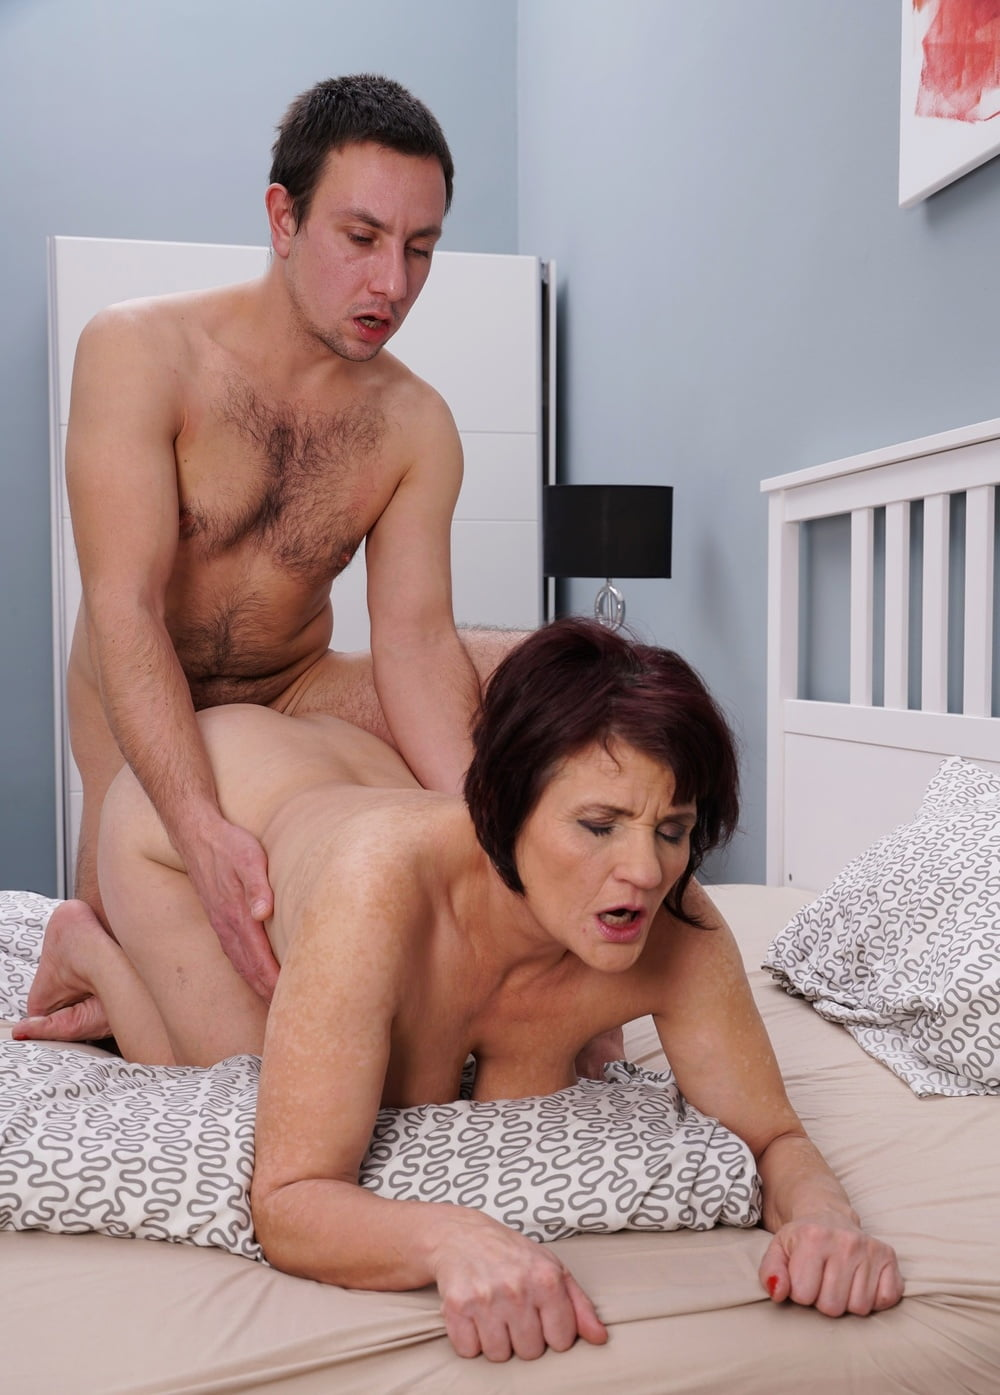 Nudist milf young men porn wiman